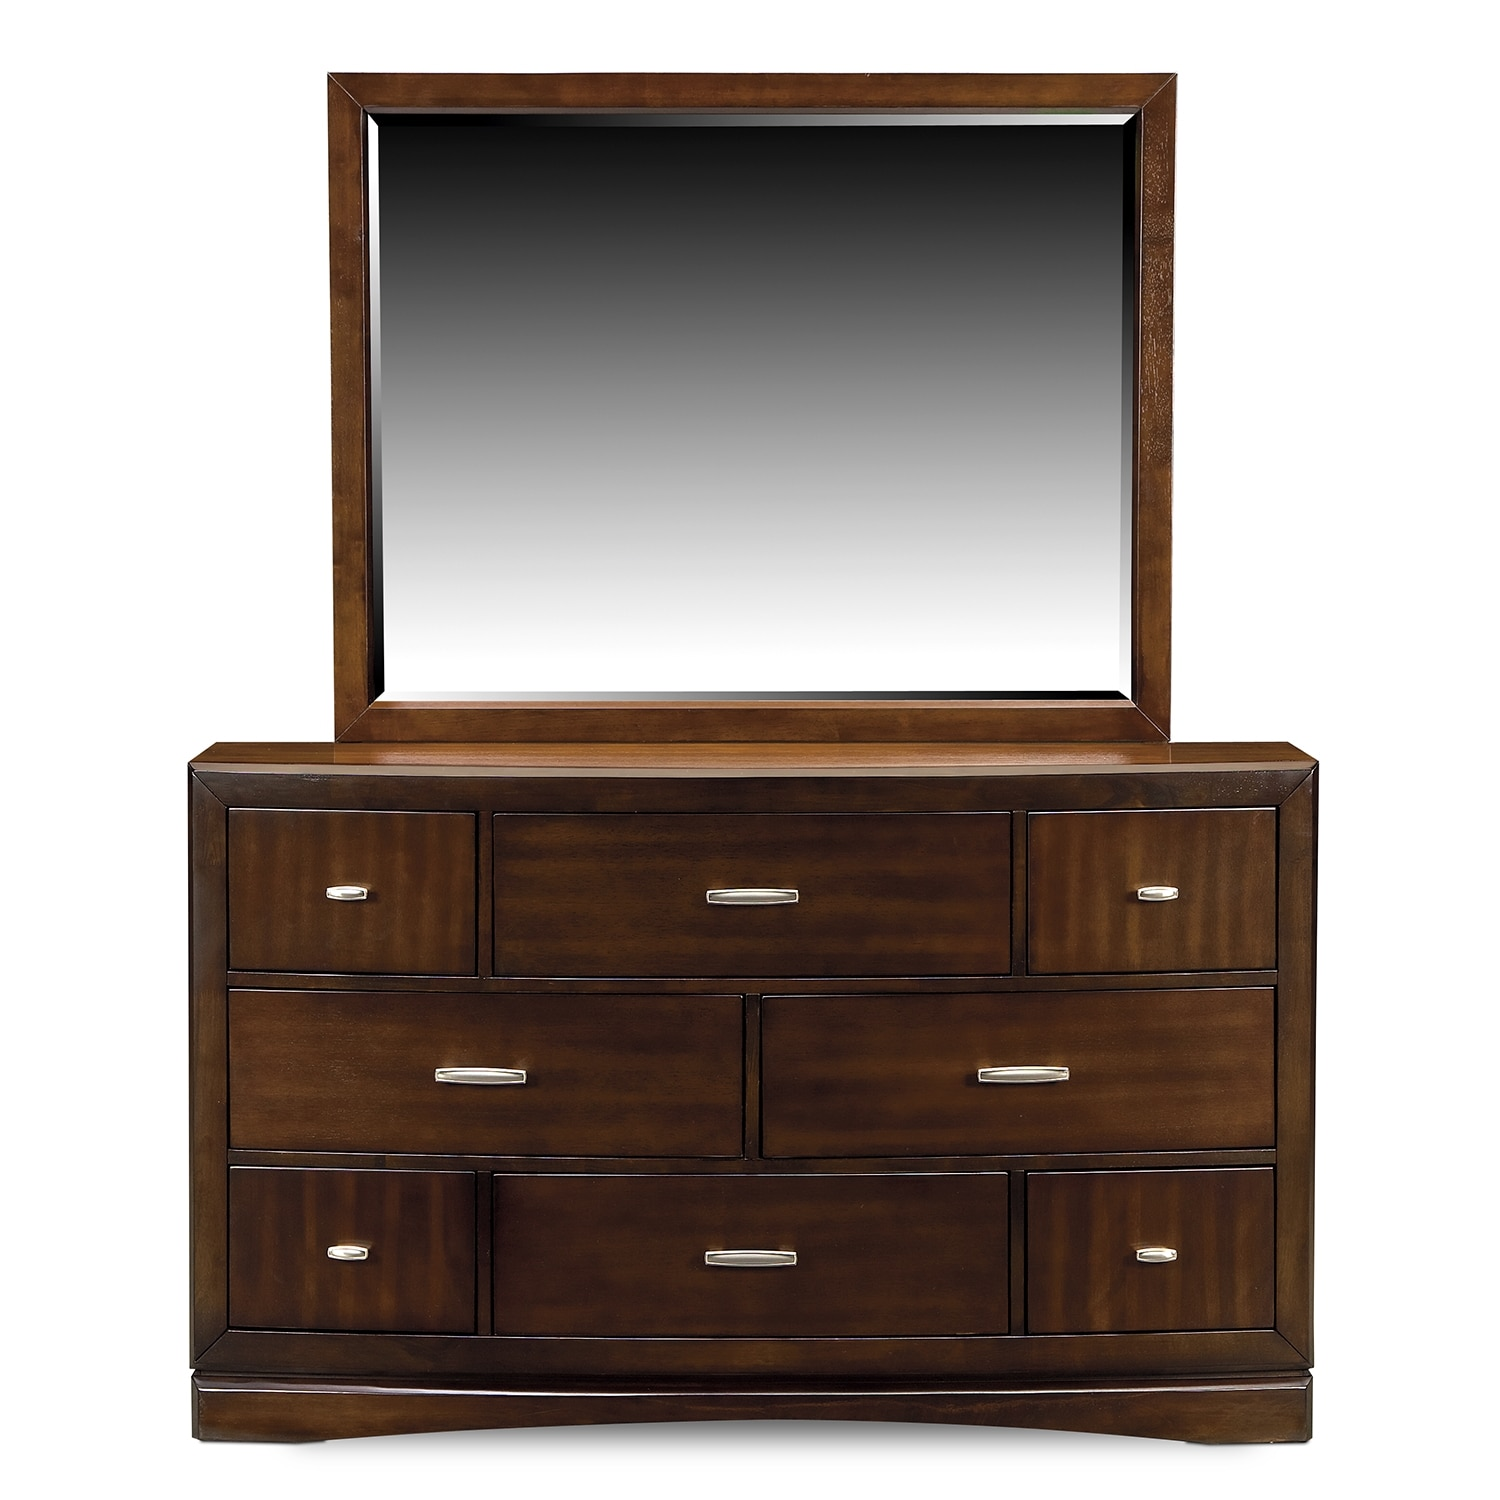 Toronto Dresser And Mirror Pecan American Signature Furniture